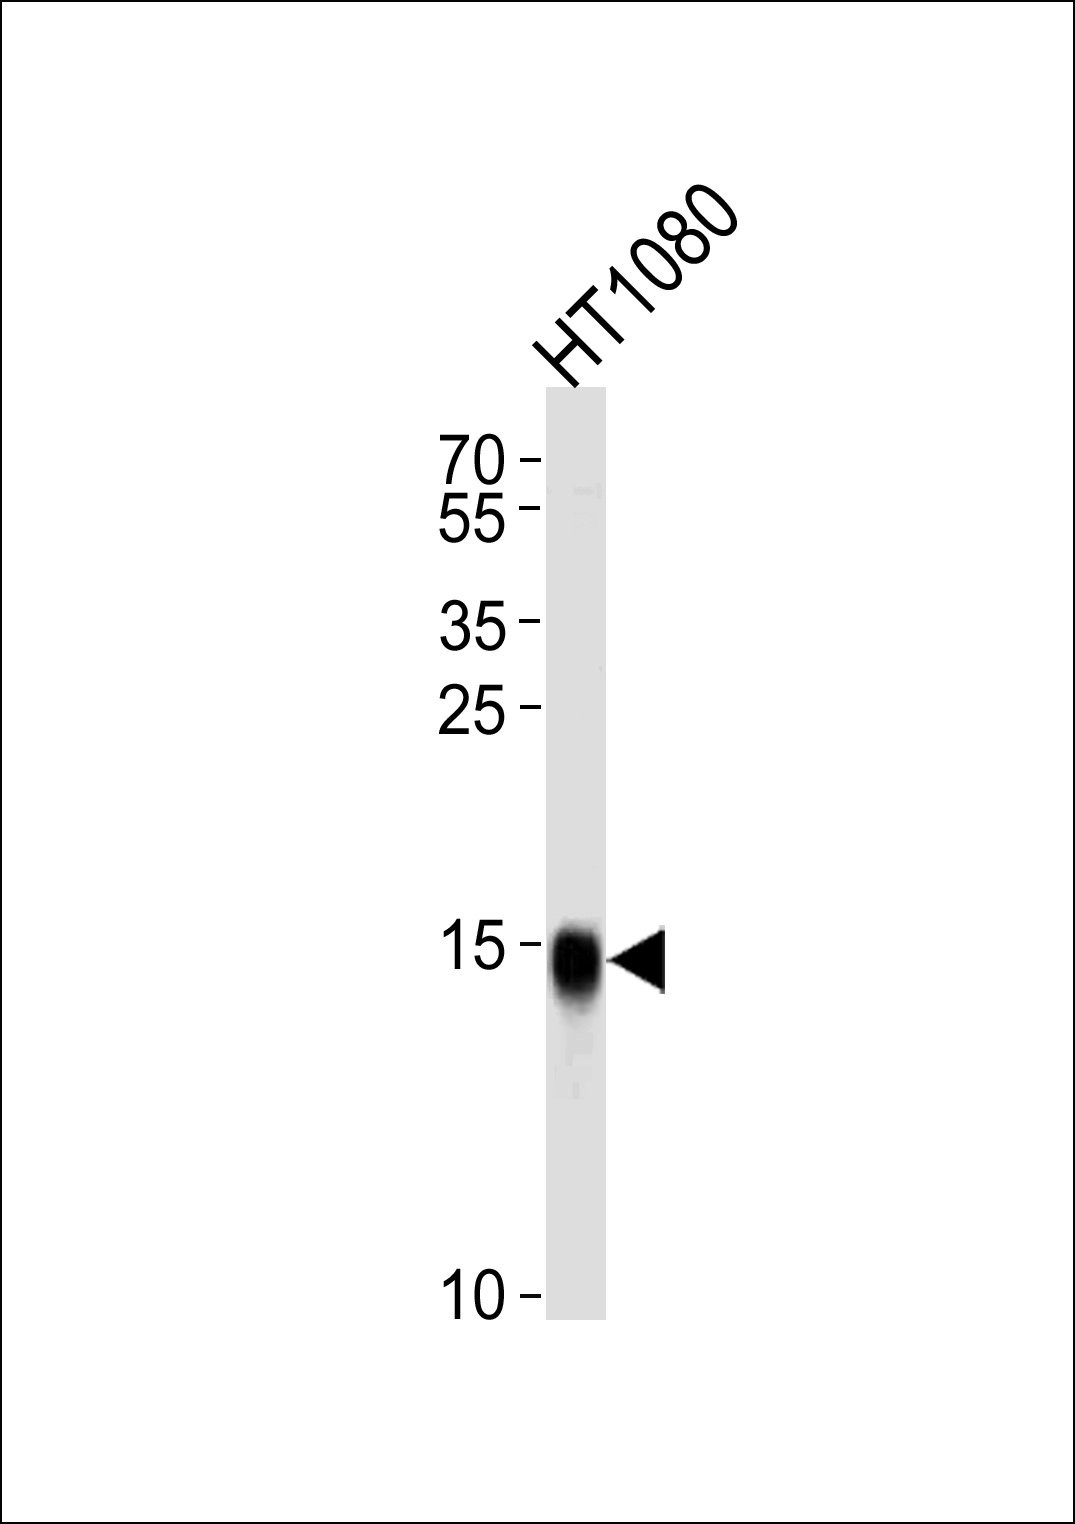 1 - Interferon-inducible protein (IFITM3) Antibody (N-term) AP1153a